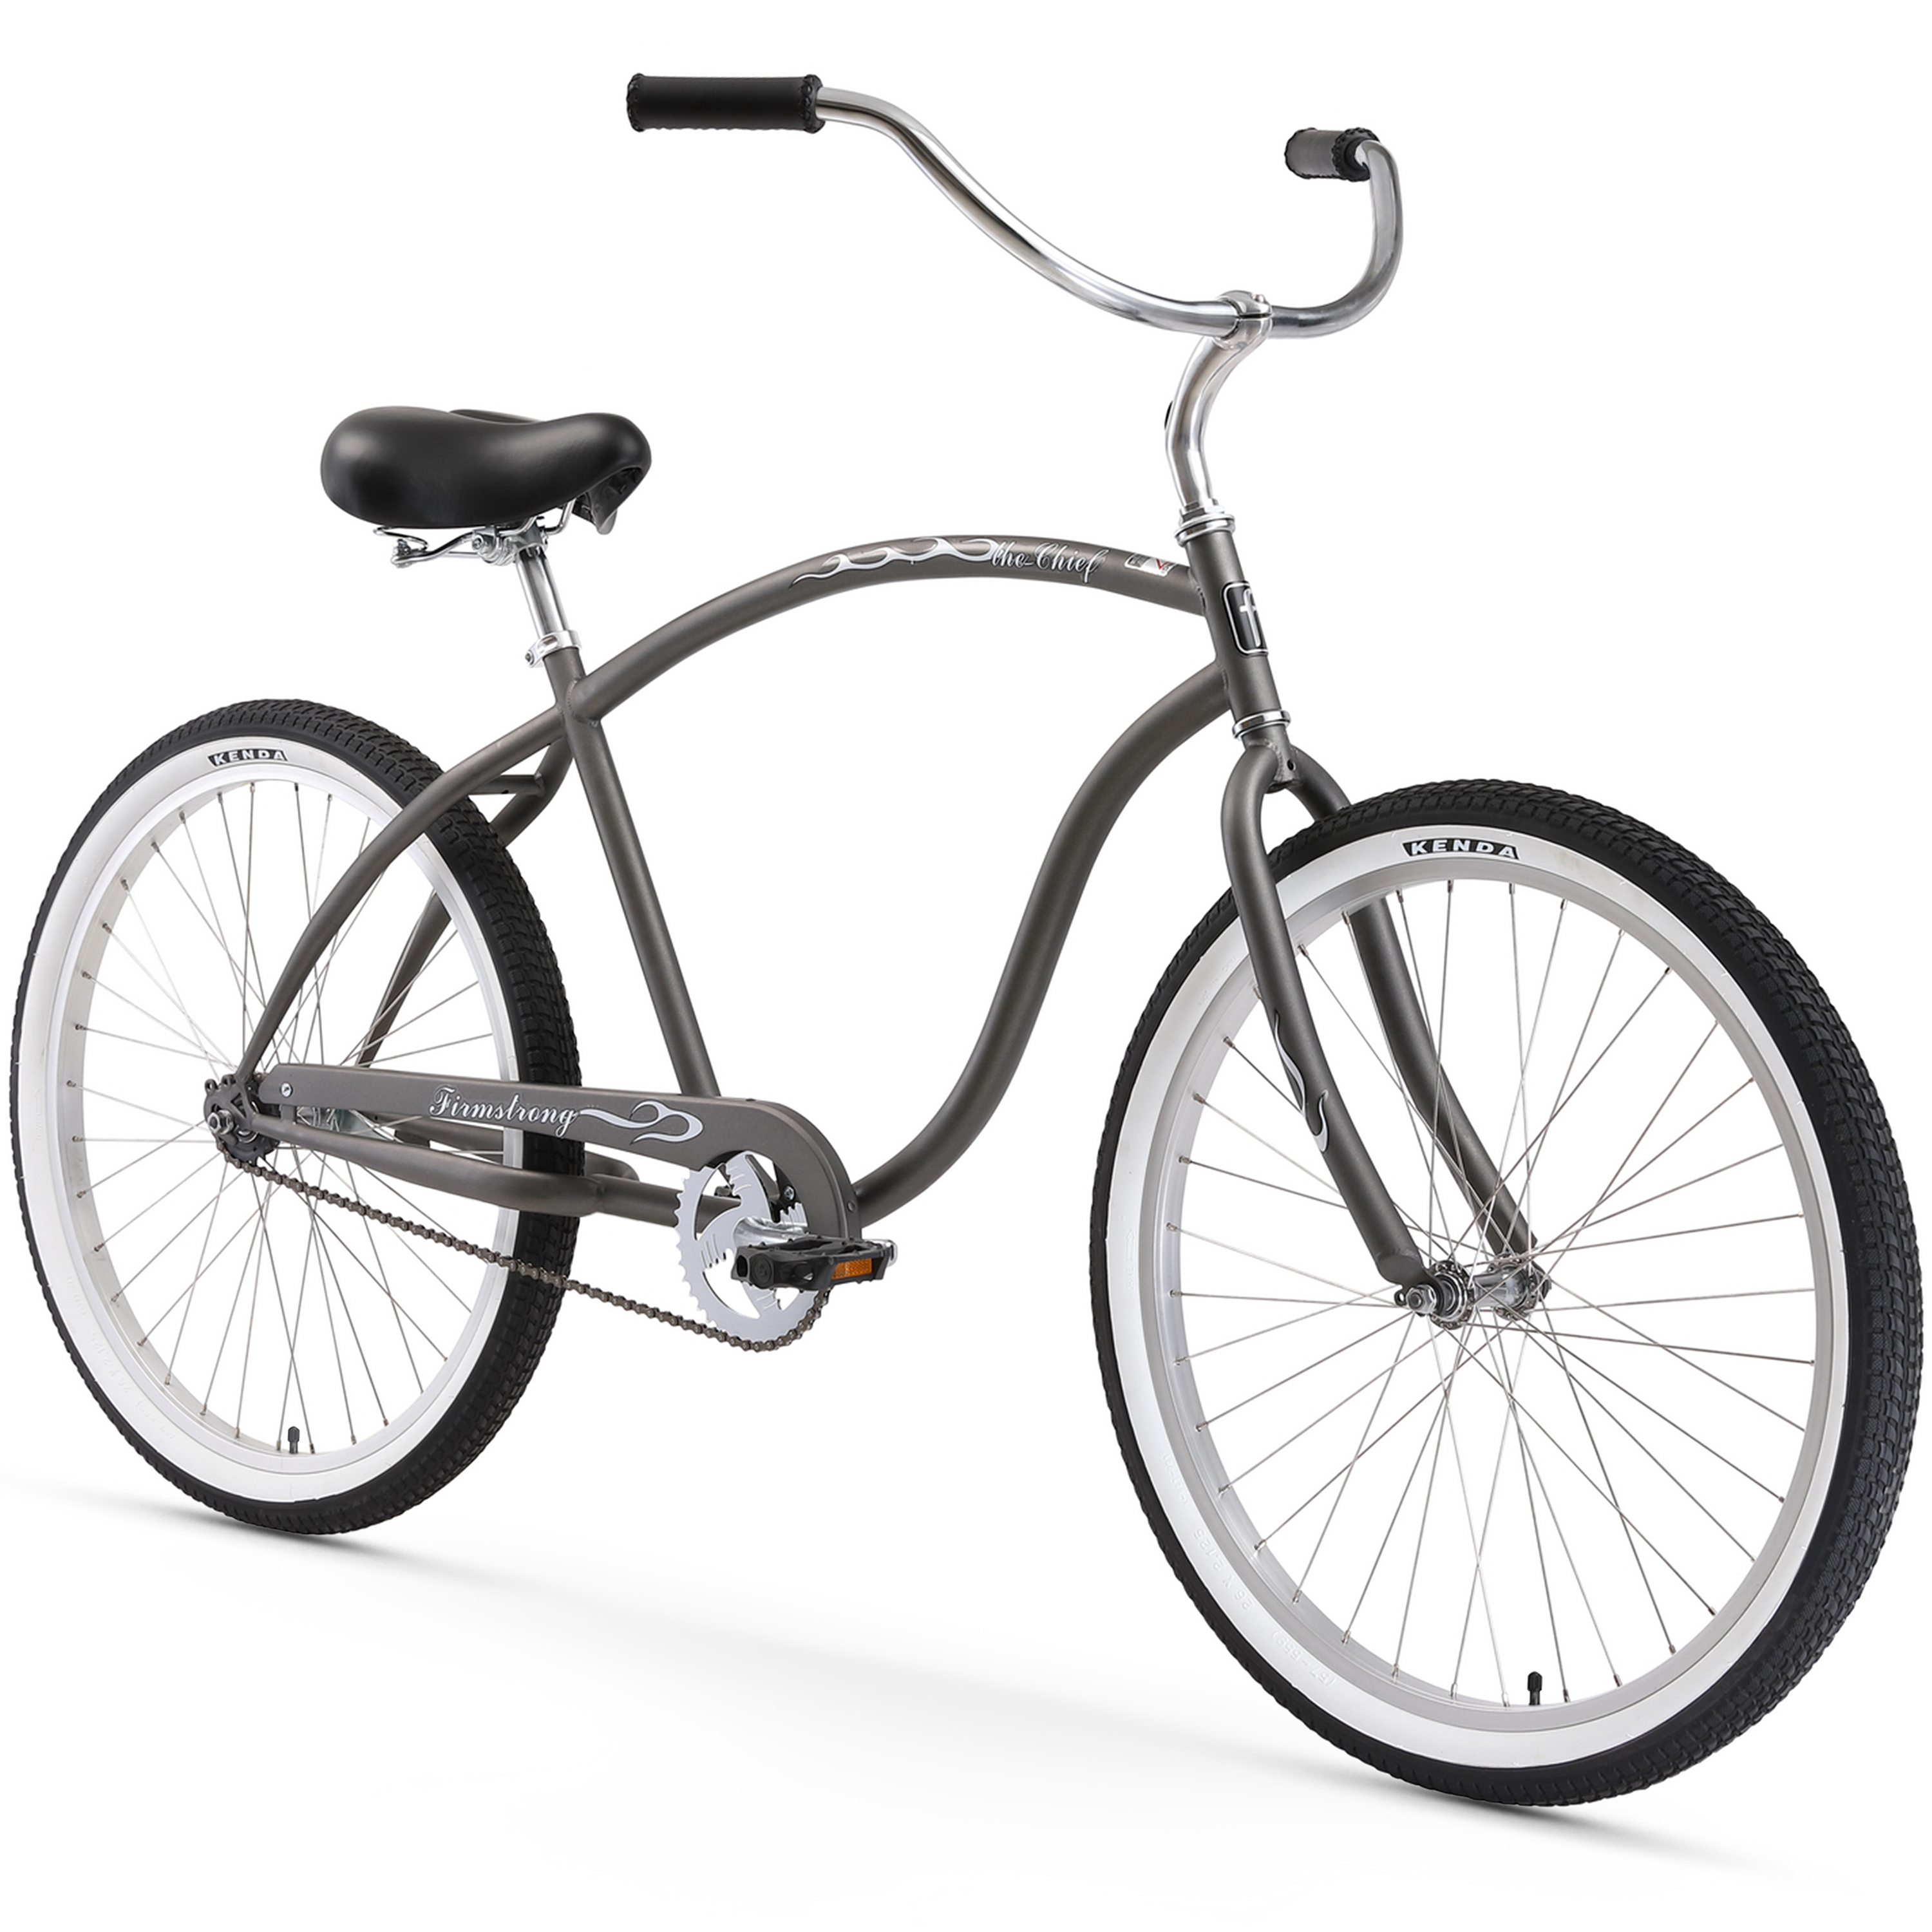 "Firmstrong 26"" Men's Beach Cruiser Bicycle, 1, 3 and 7 Speed"